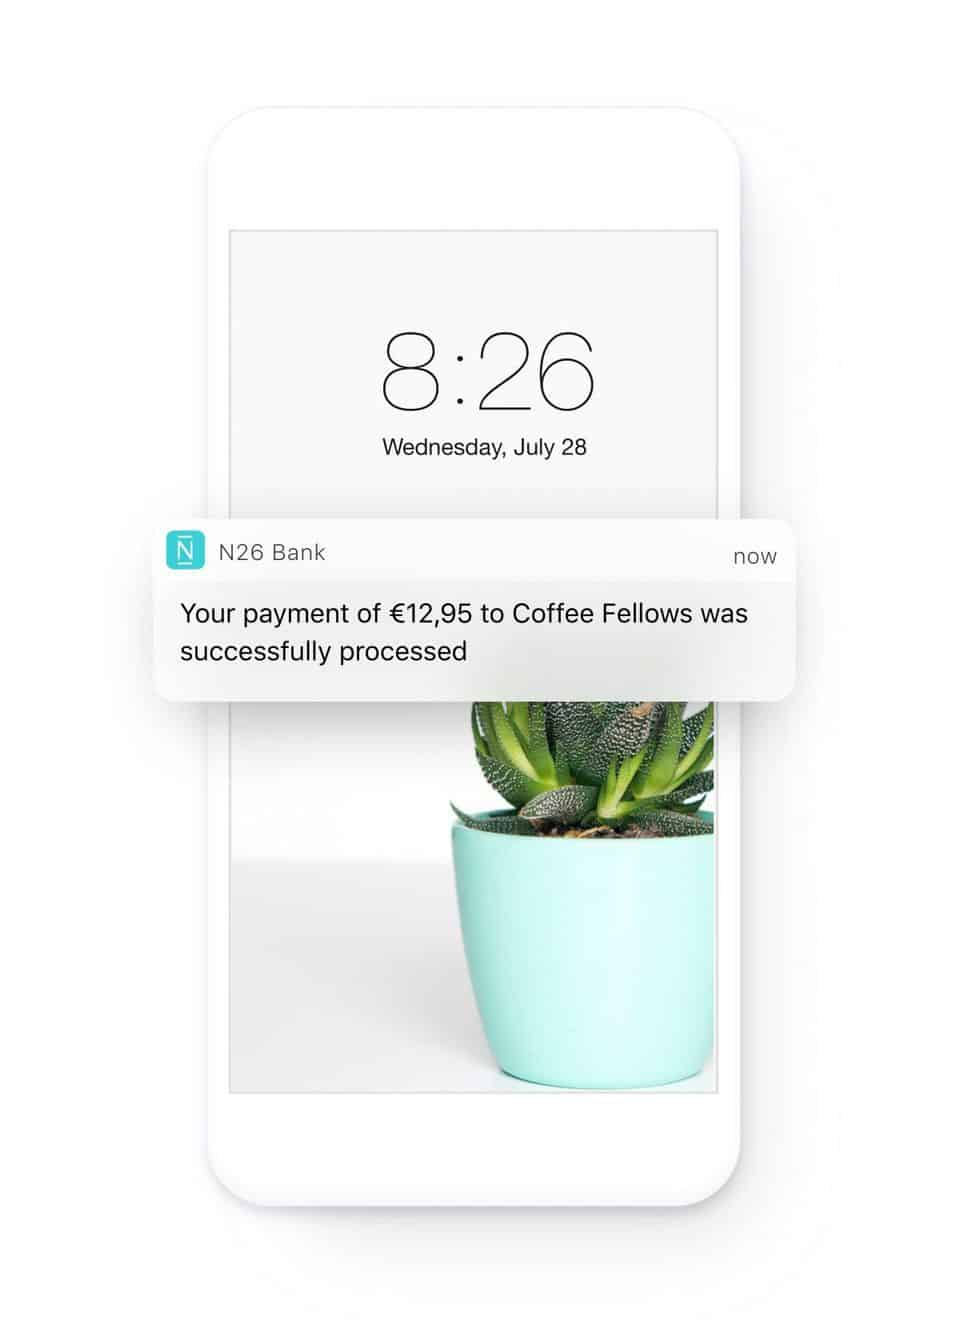 N26 Review - The N26 app gives automatic payment notifications when you use your card